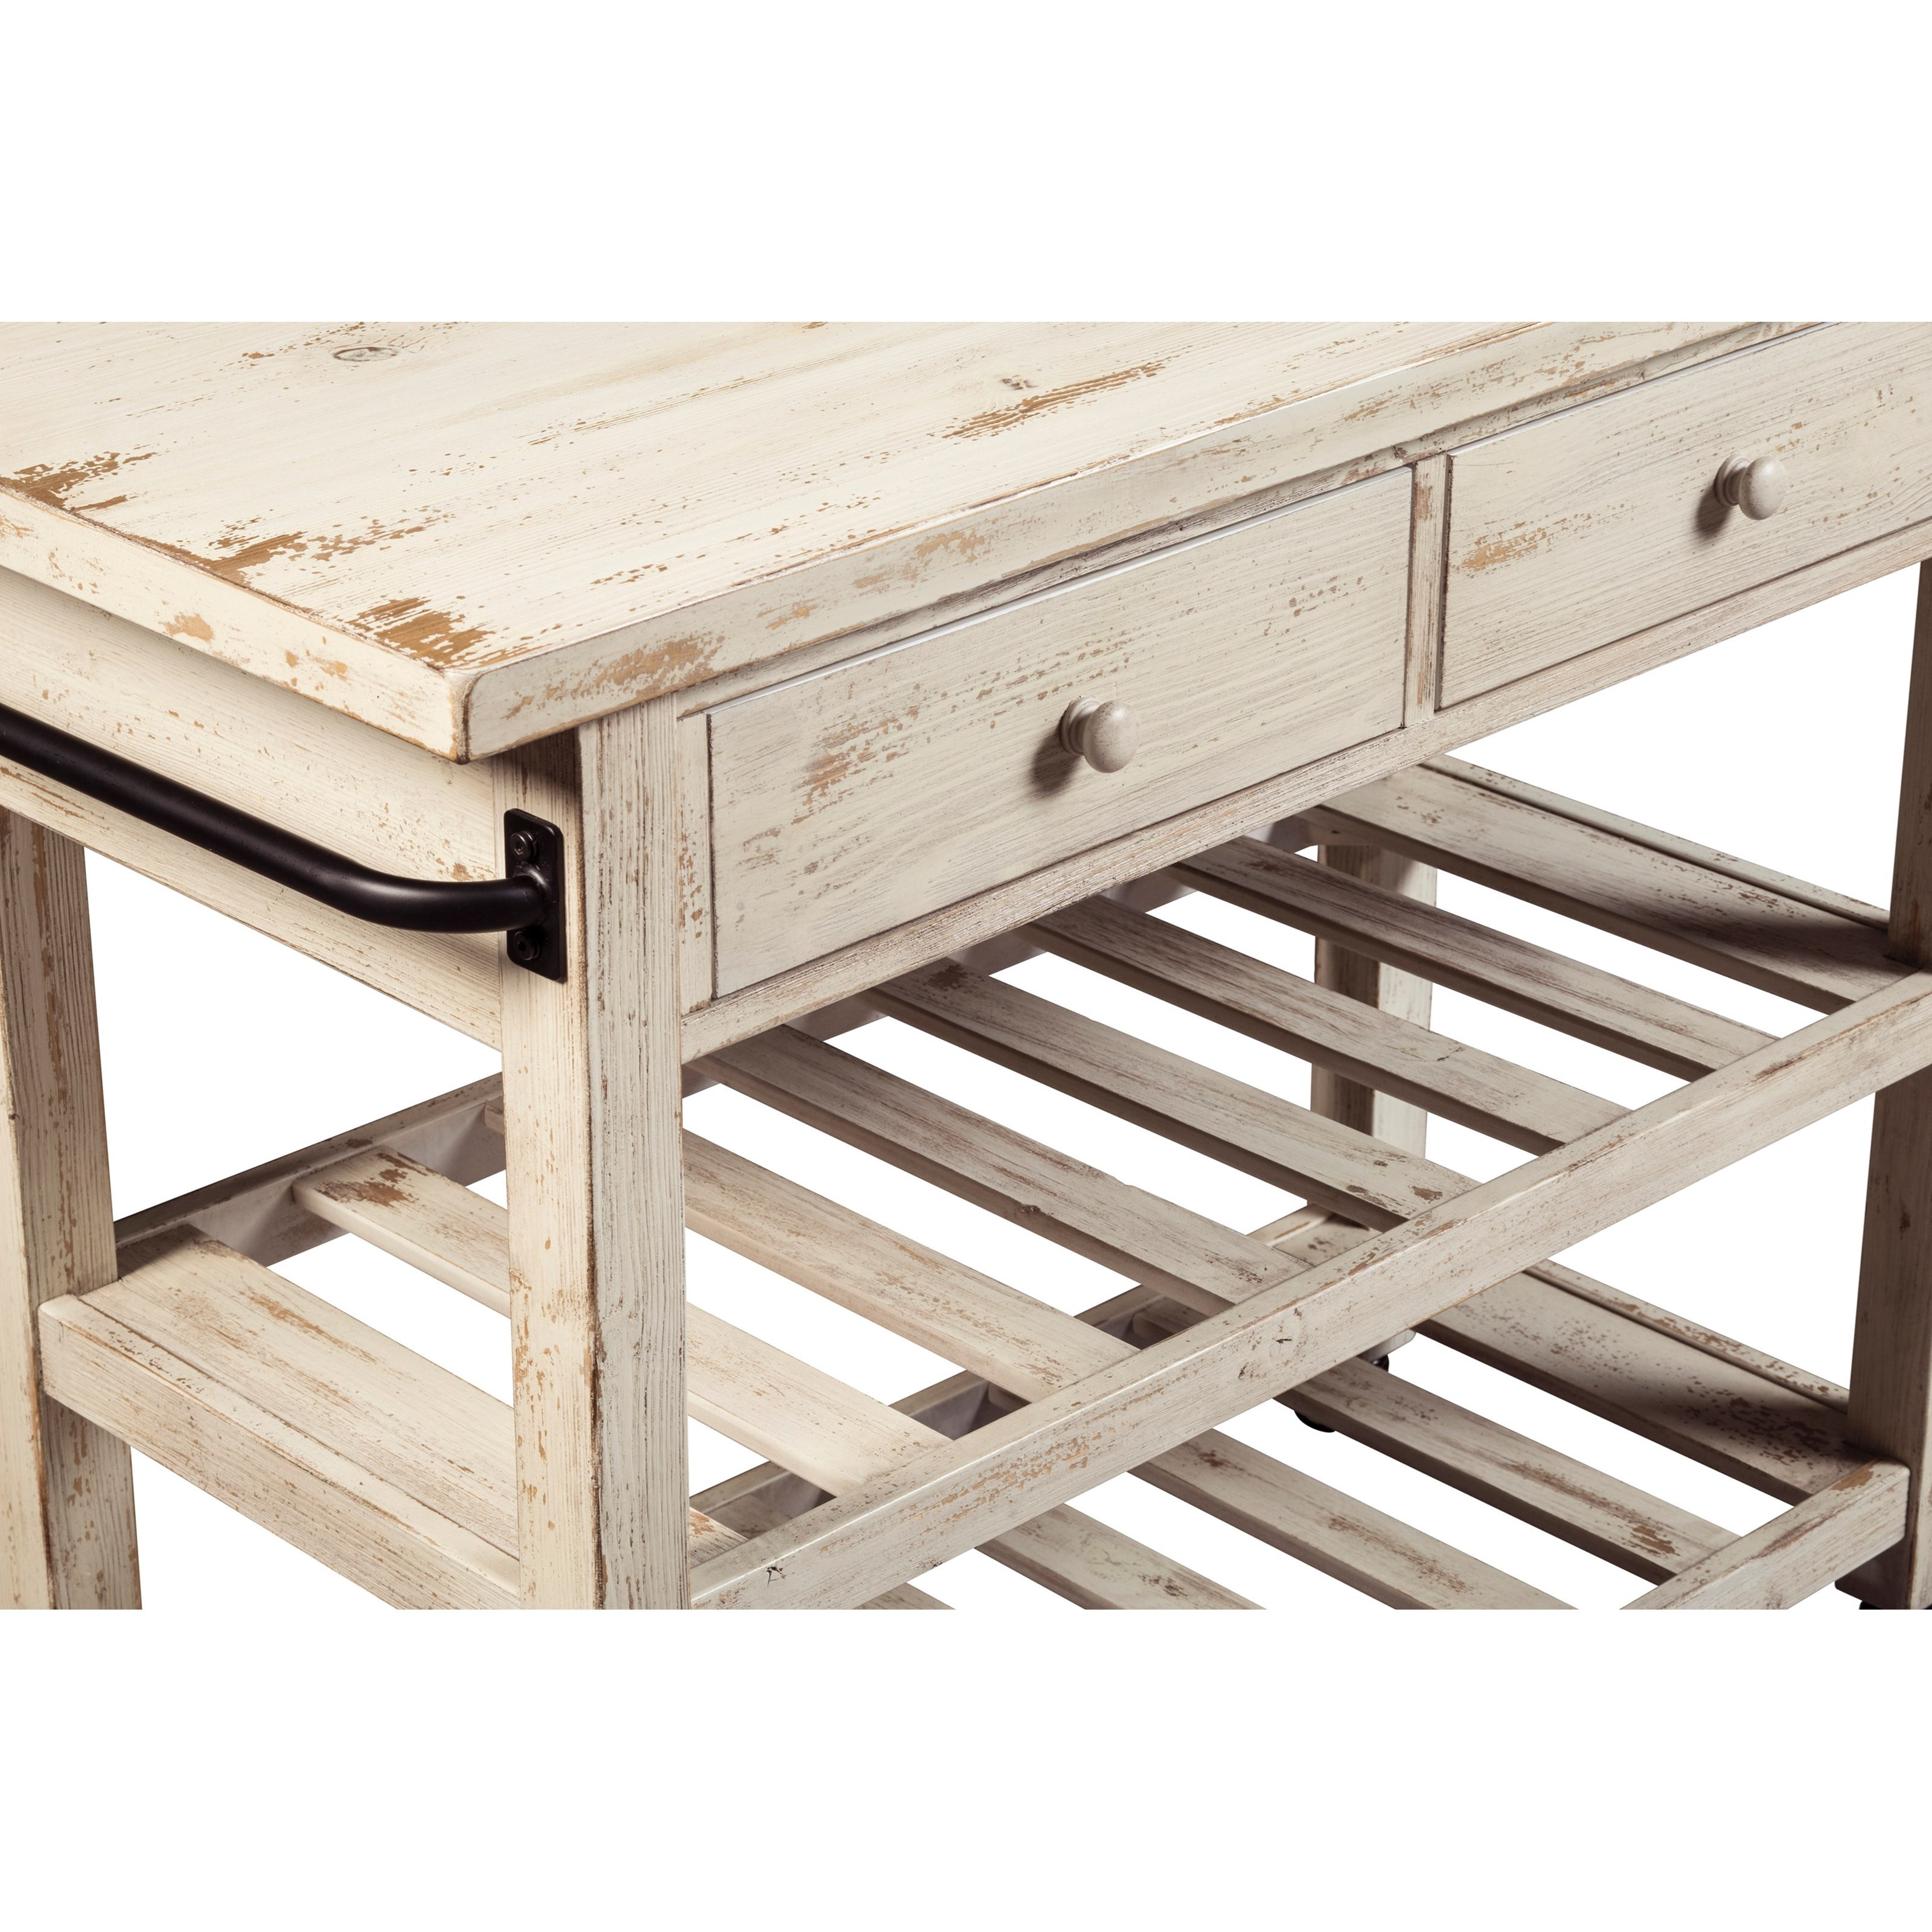 Distressed White Finish Kitchen Cart with Locking Casters by